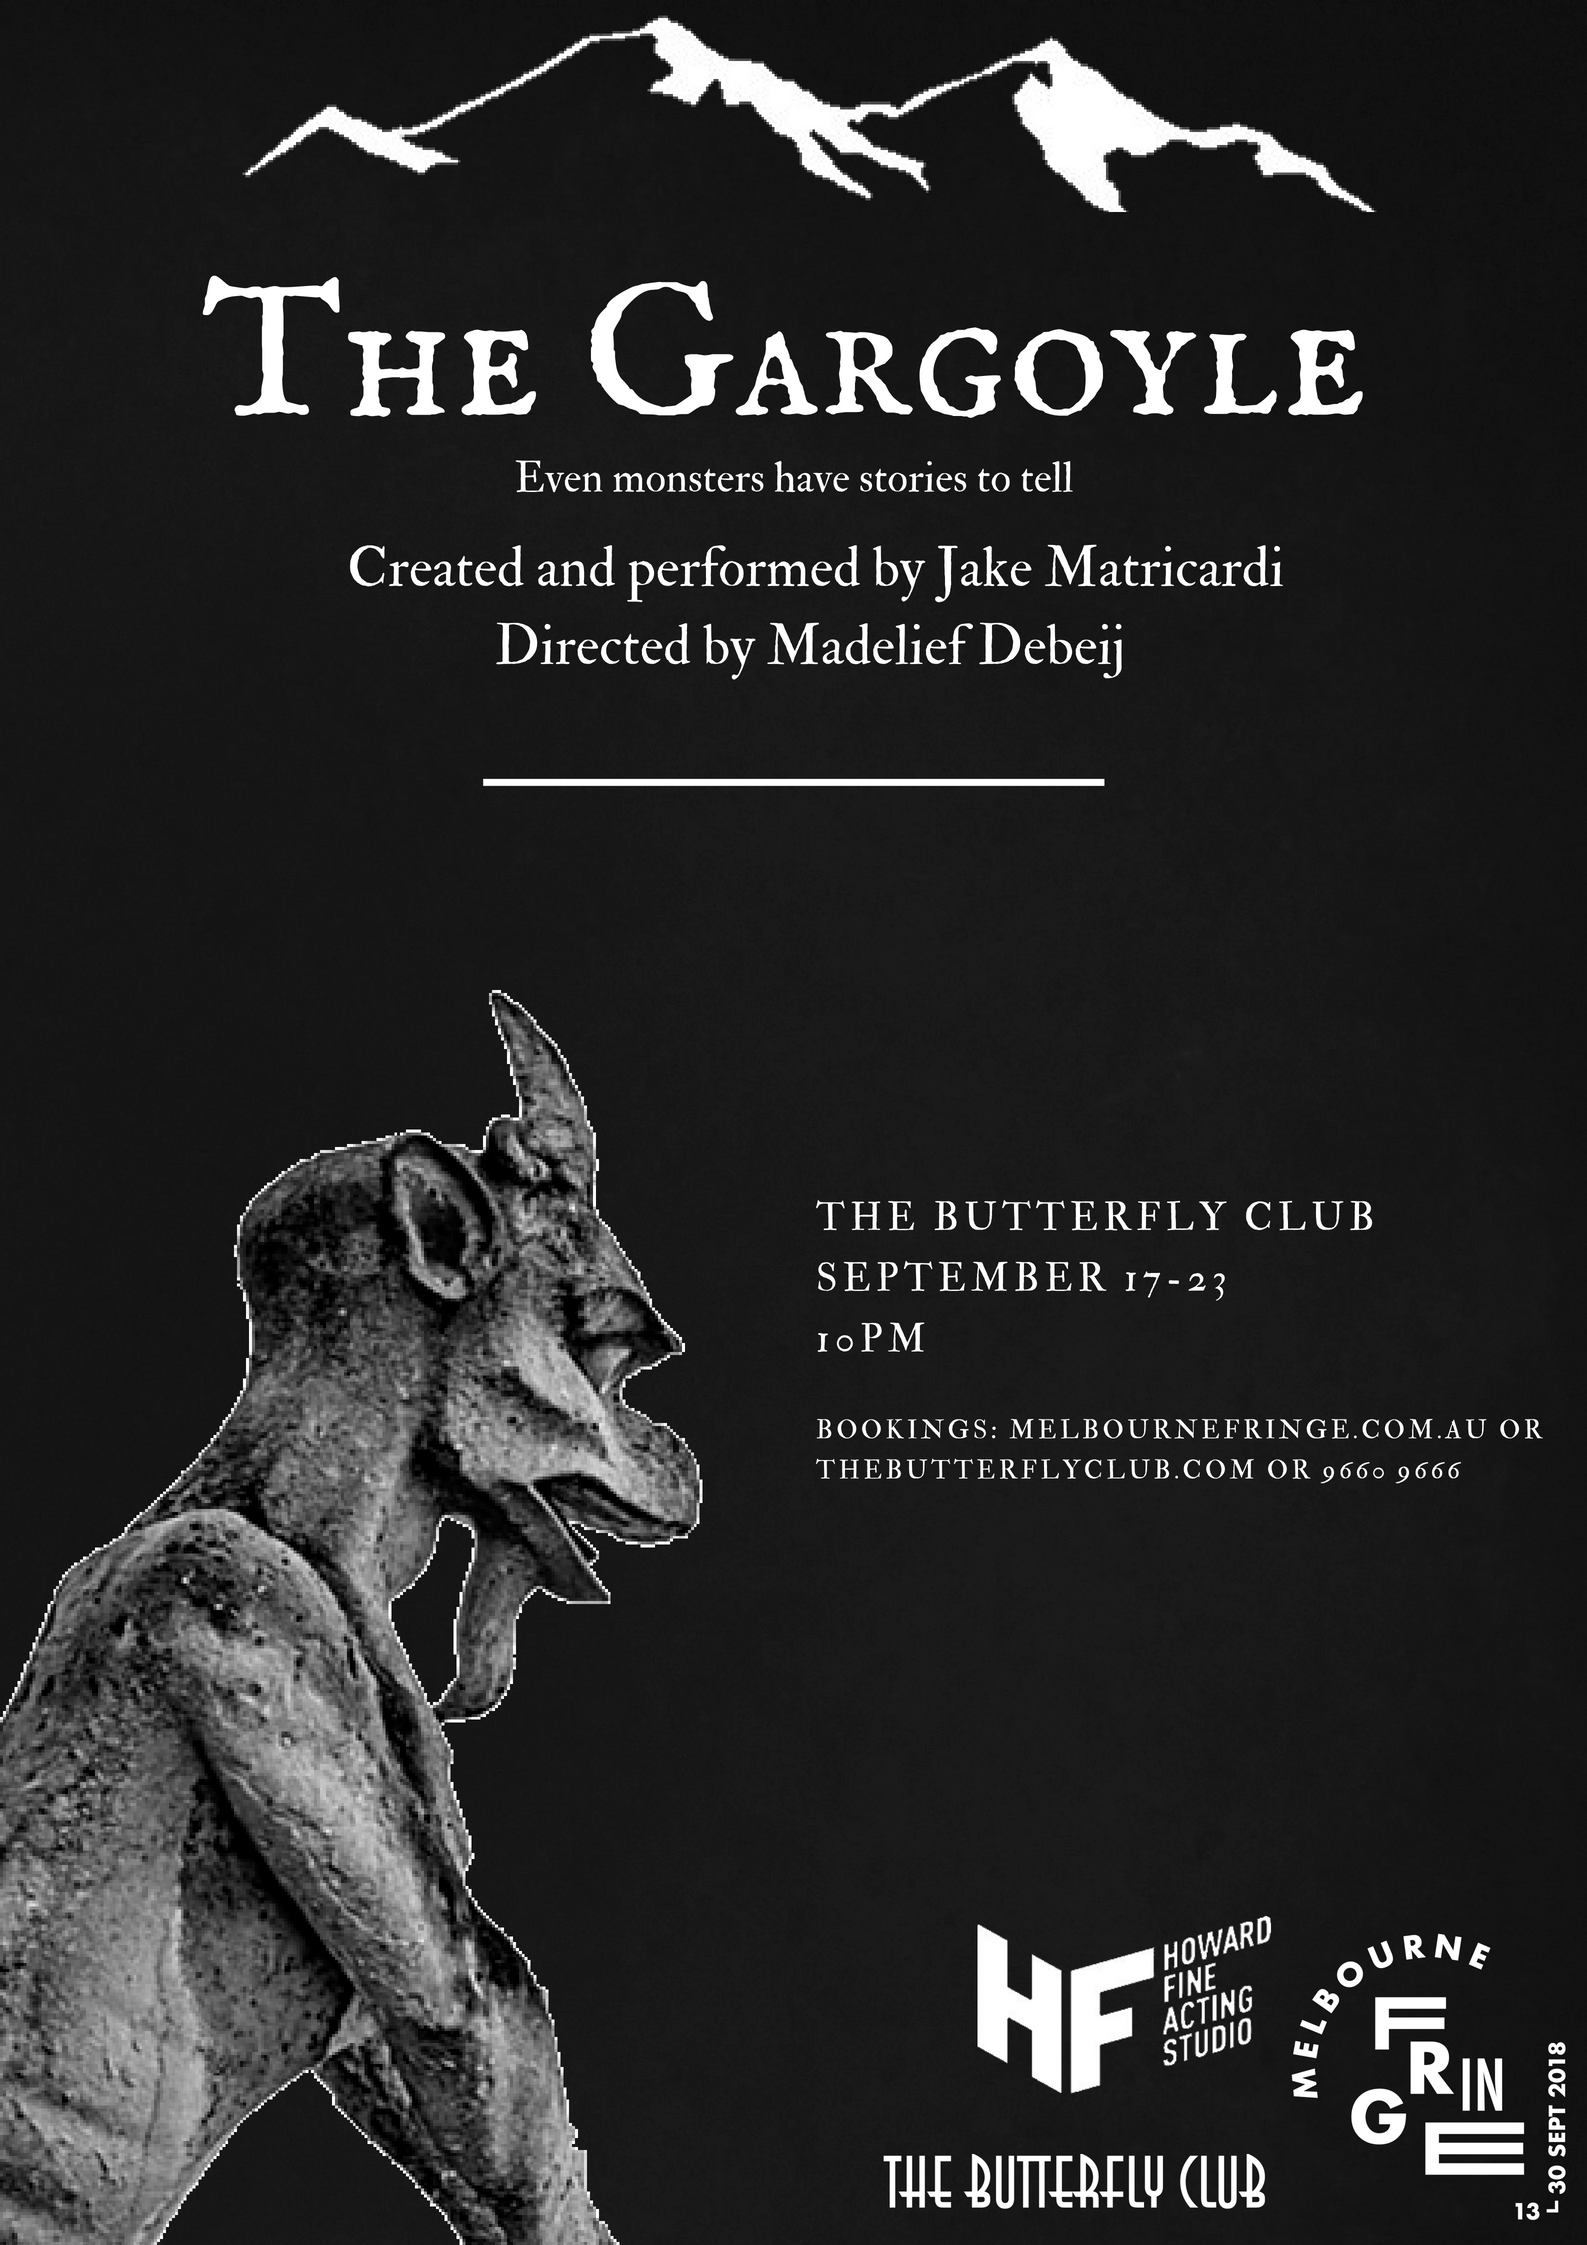 The Gargoyle  - poster designed by Jake Matricardi.